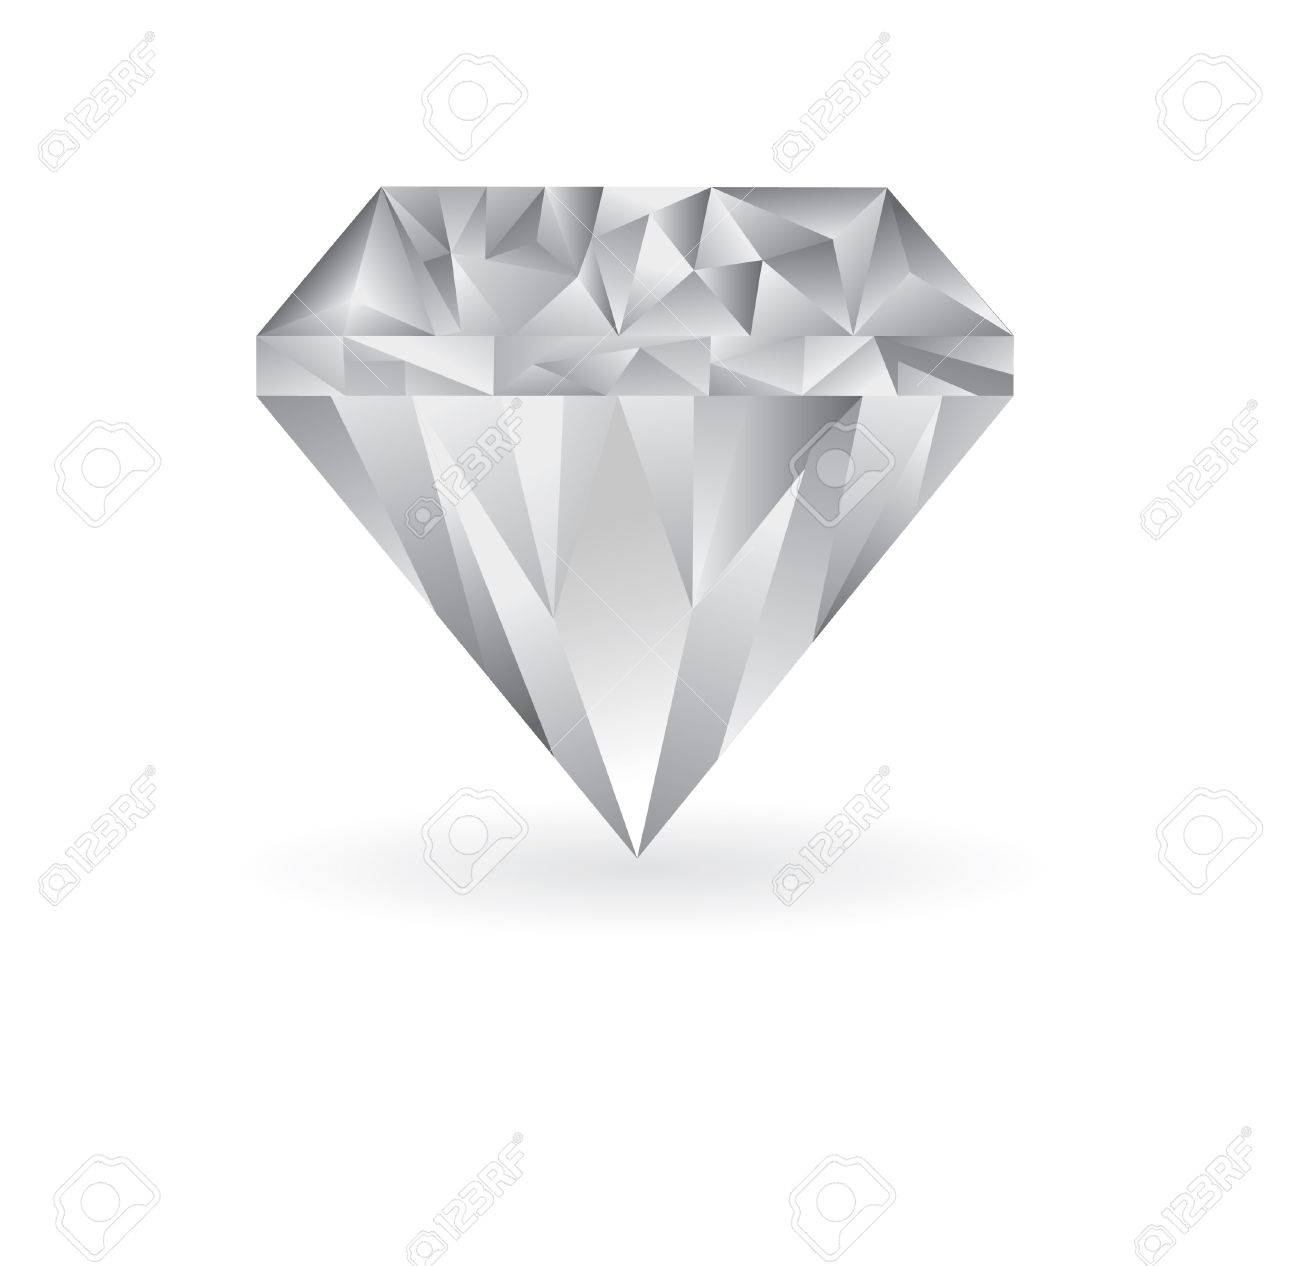 Cool Diamond Illustration On A White Background Royalty Free